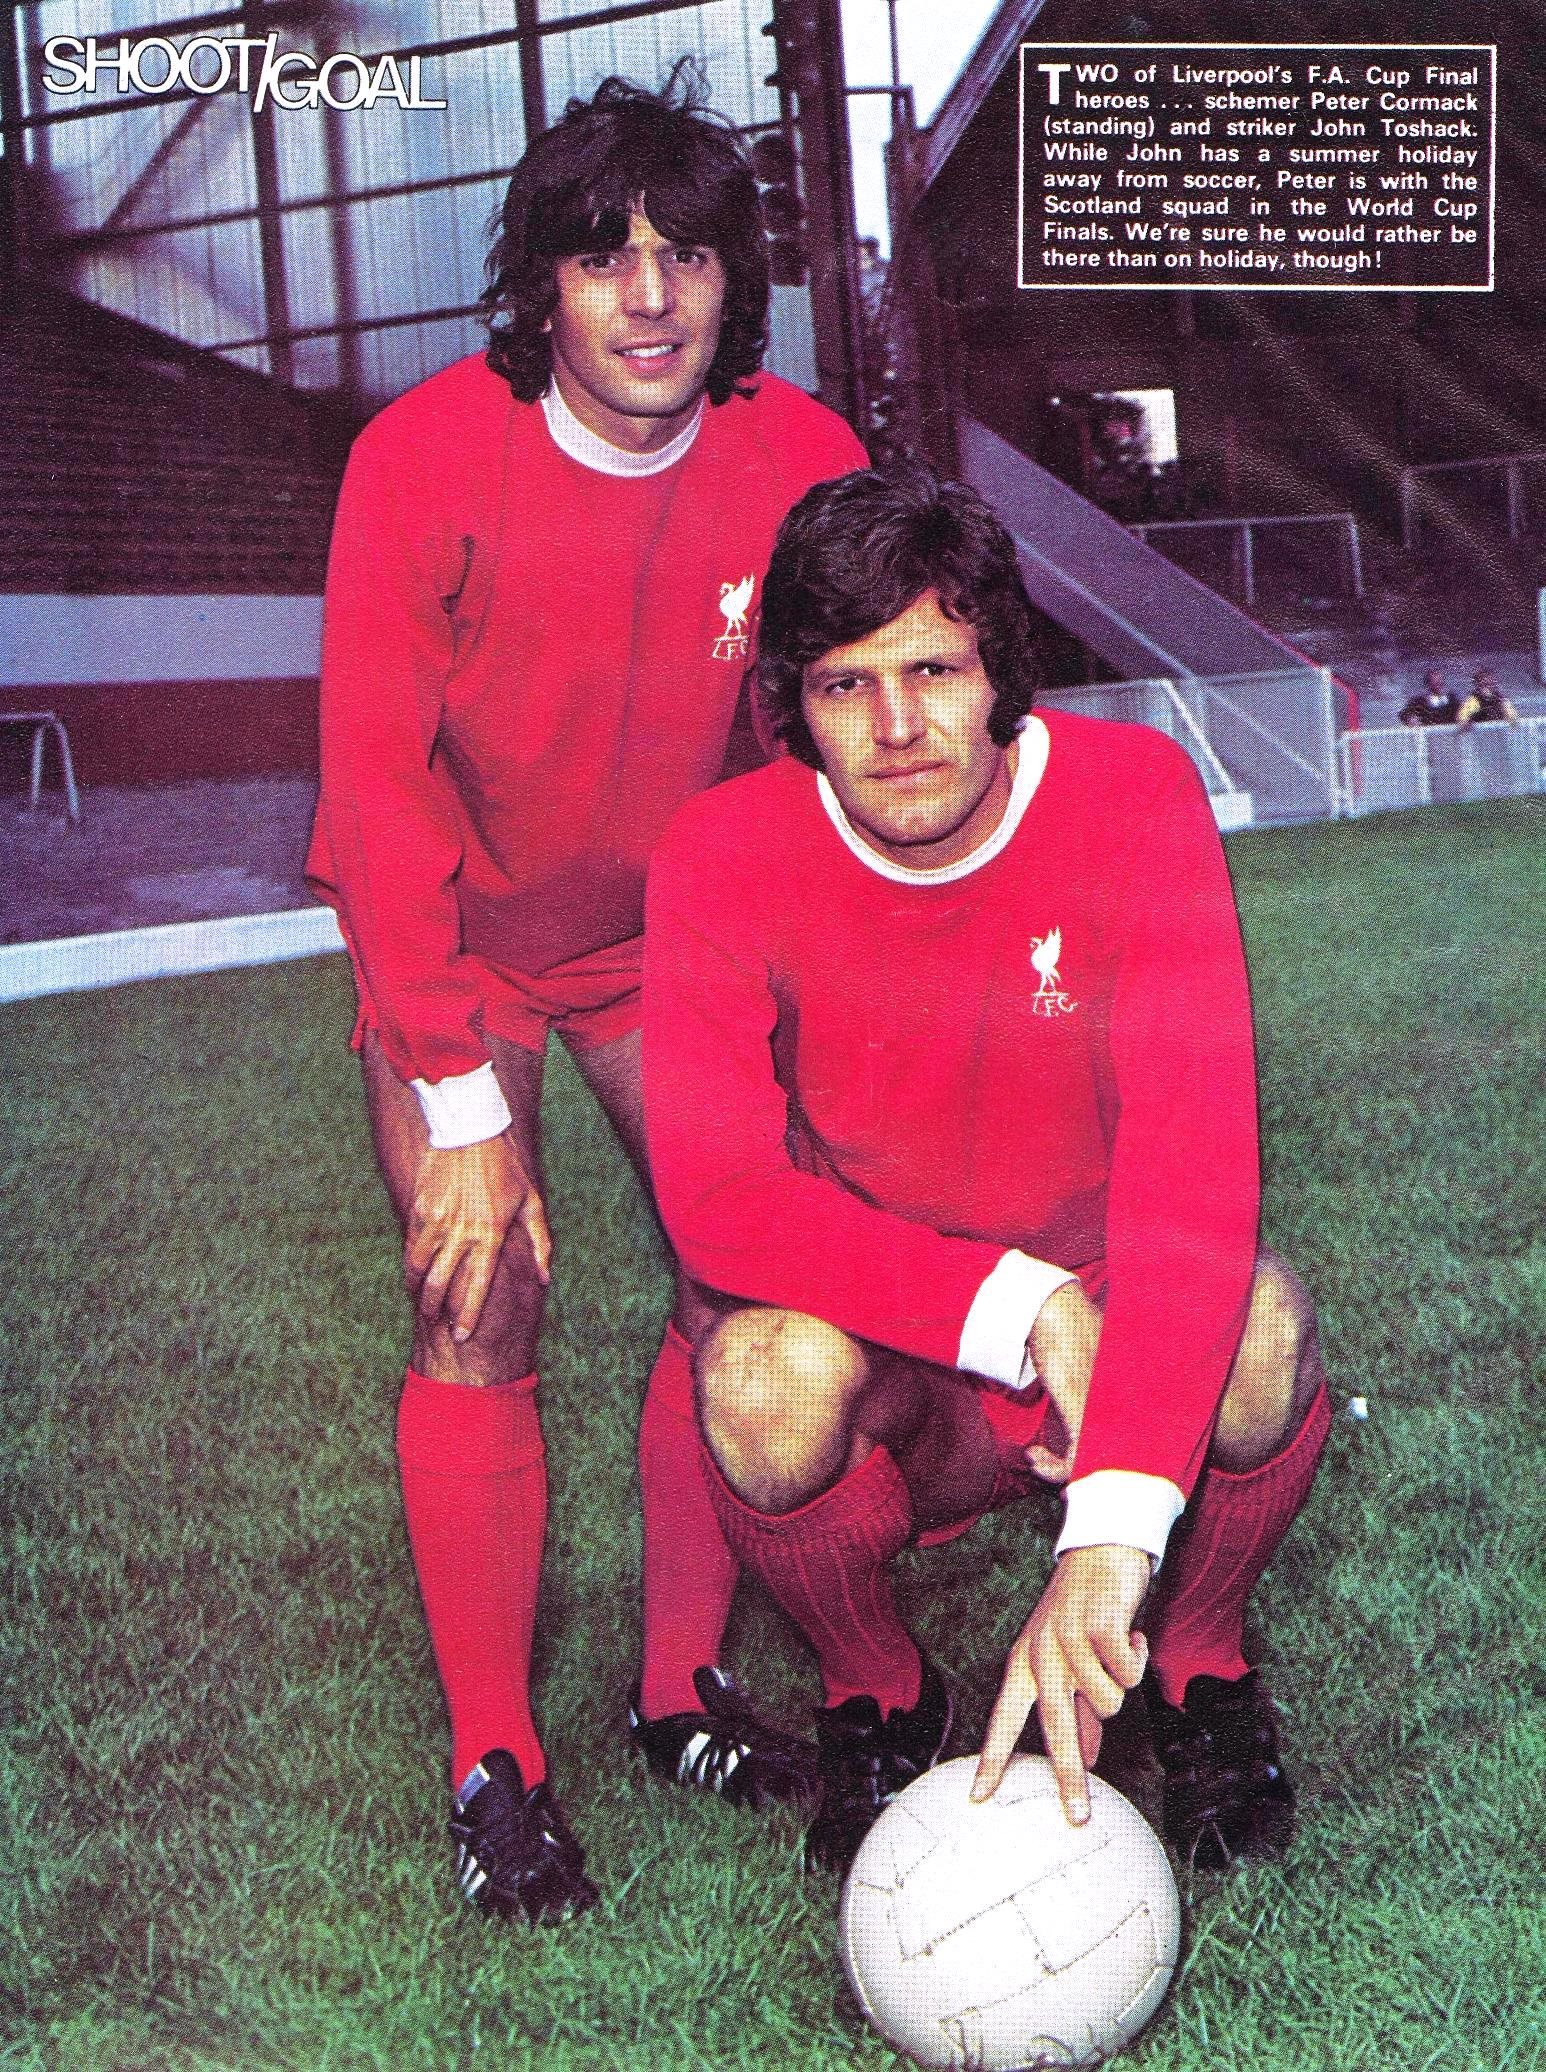 Poster of Peter Cormack and John Toshack in Shoot!/Goal 1974